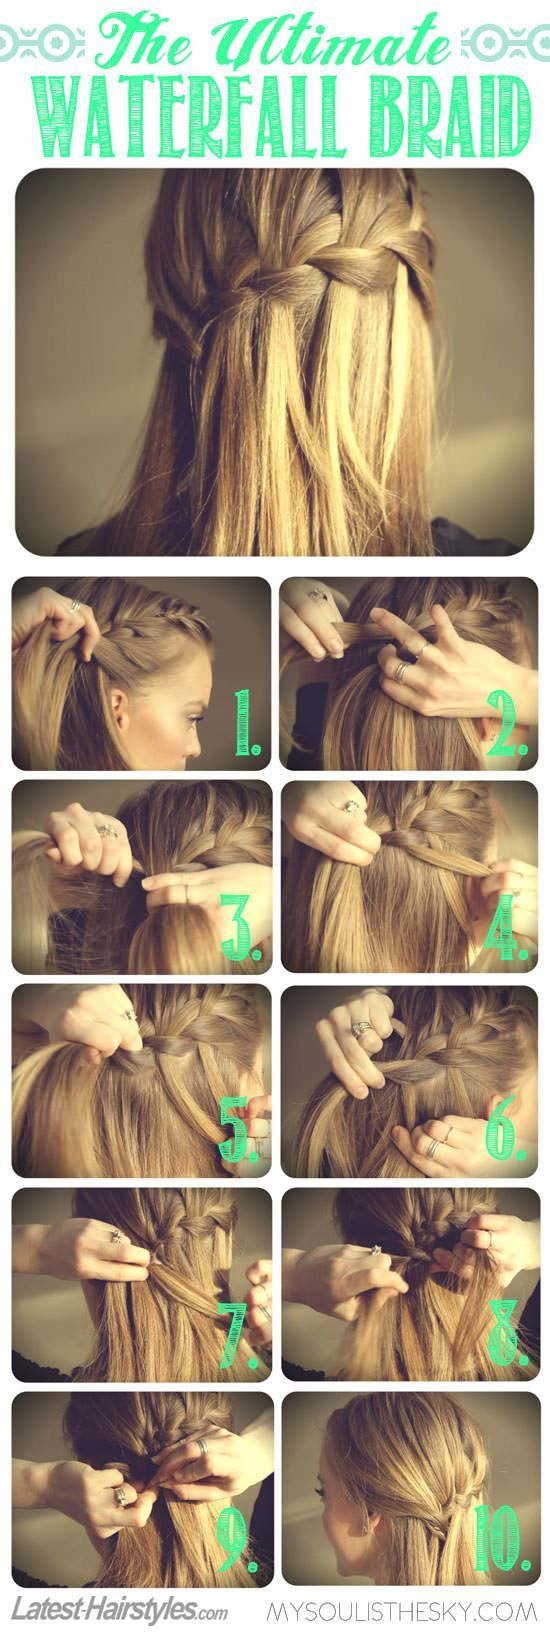 Marvelous 20 Gorgeous Braided Hairstyles You Can Actually Do Yourself Hairstyles For Women Draintrainus